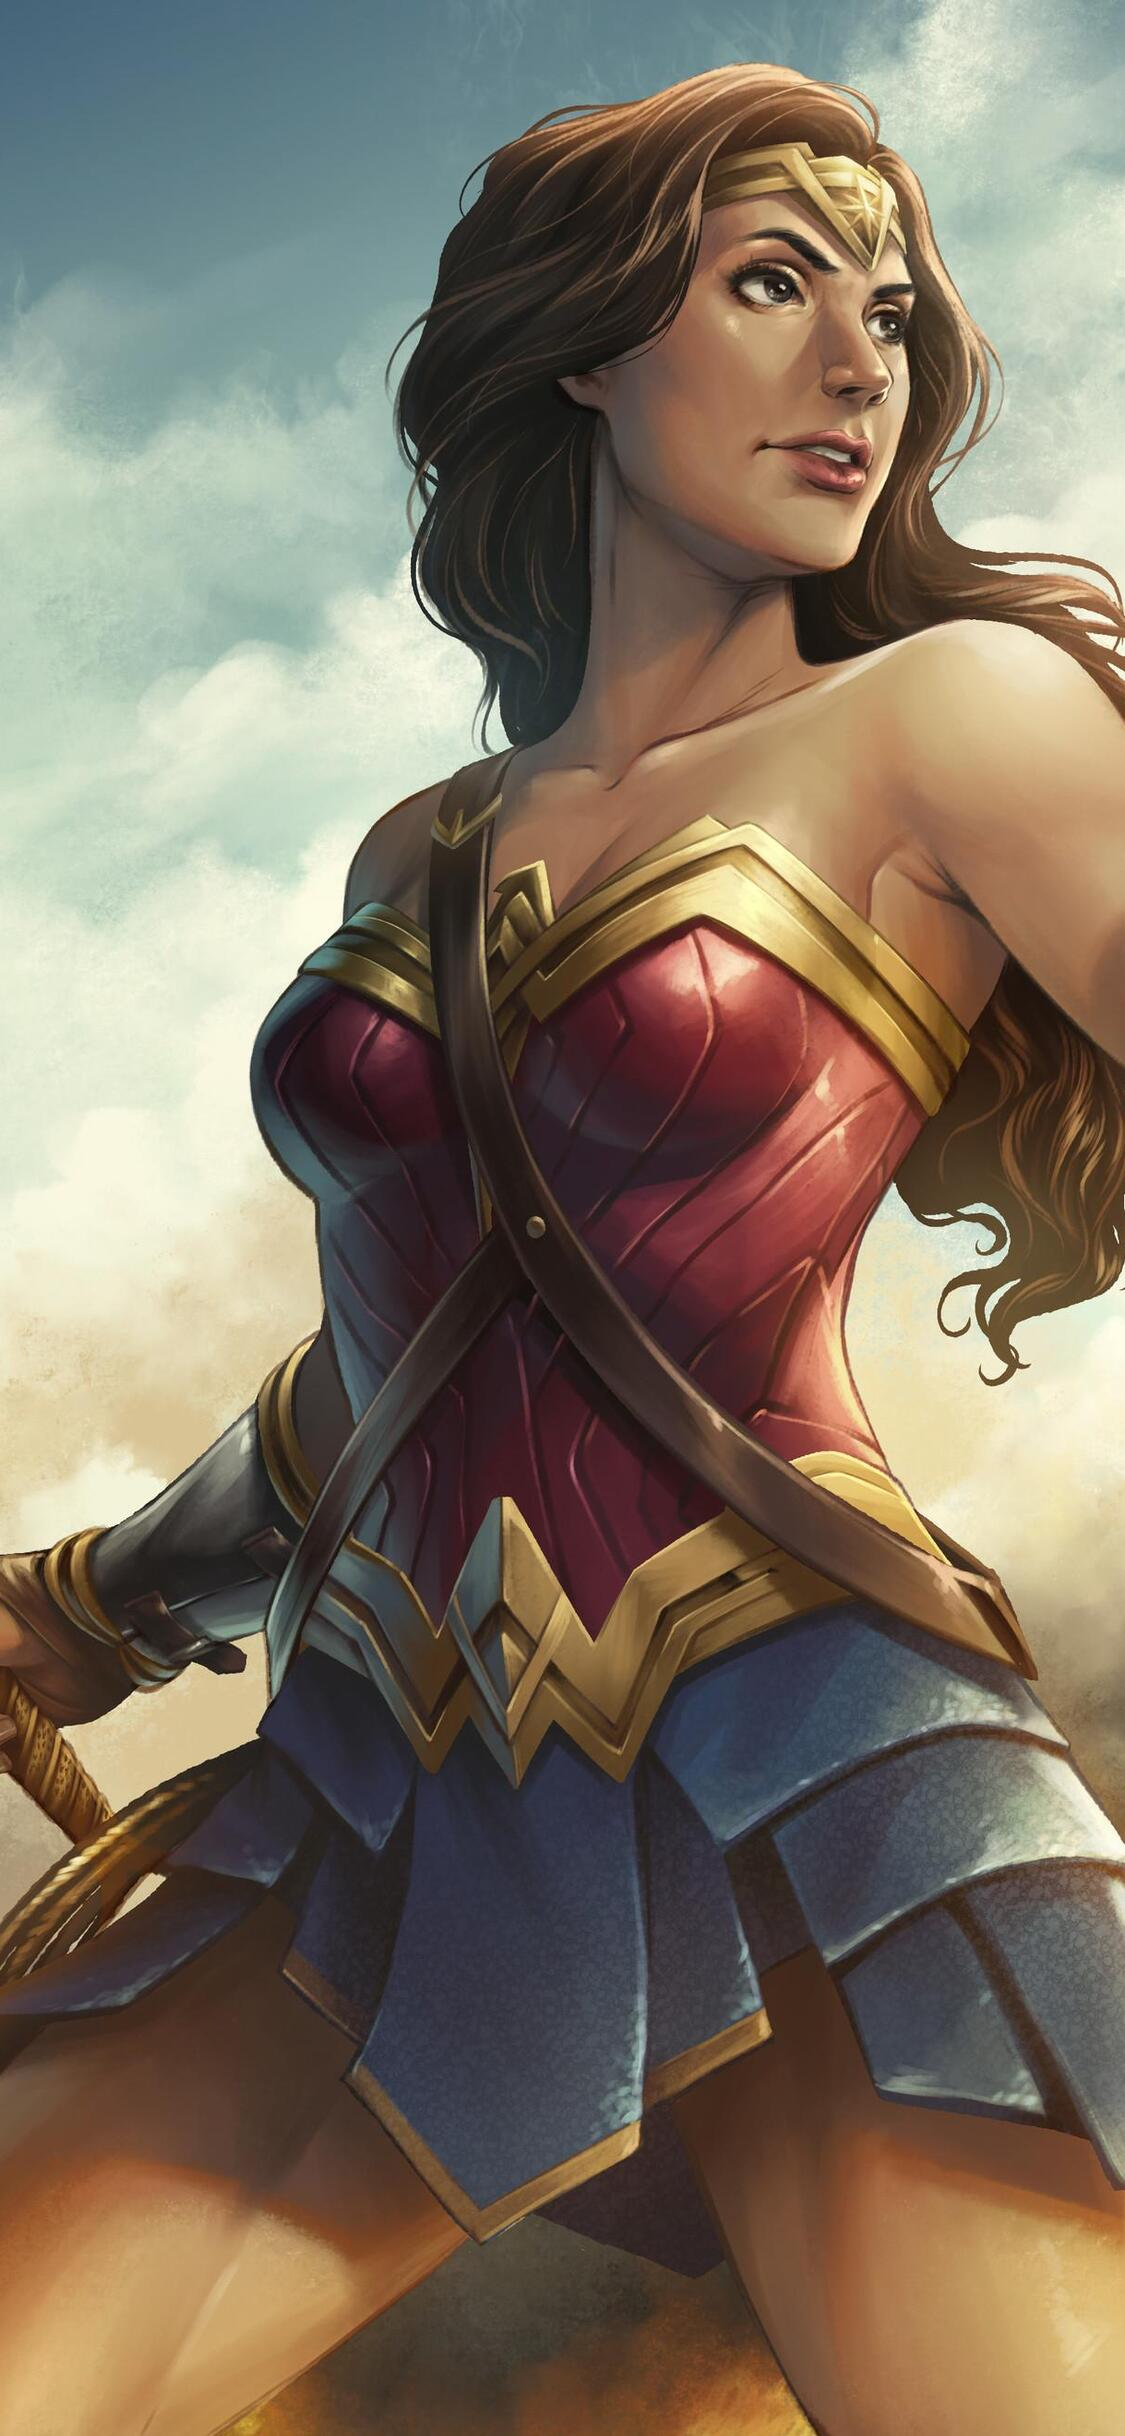 Wonder Woman Artwork Hd Ky